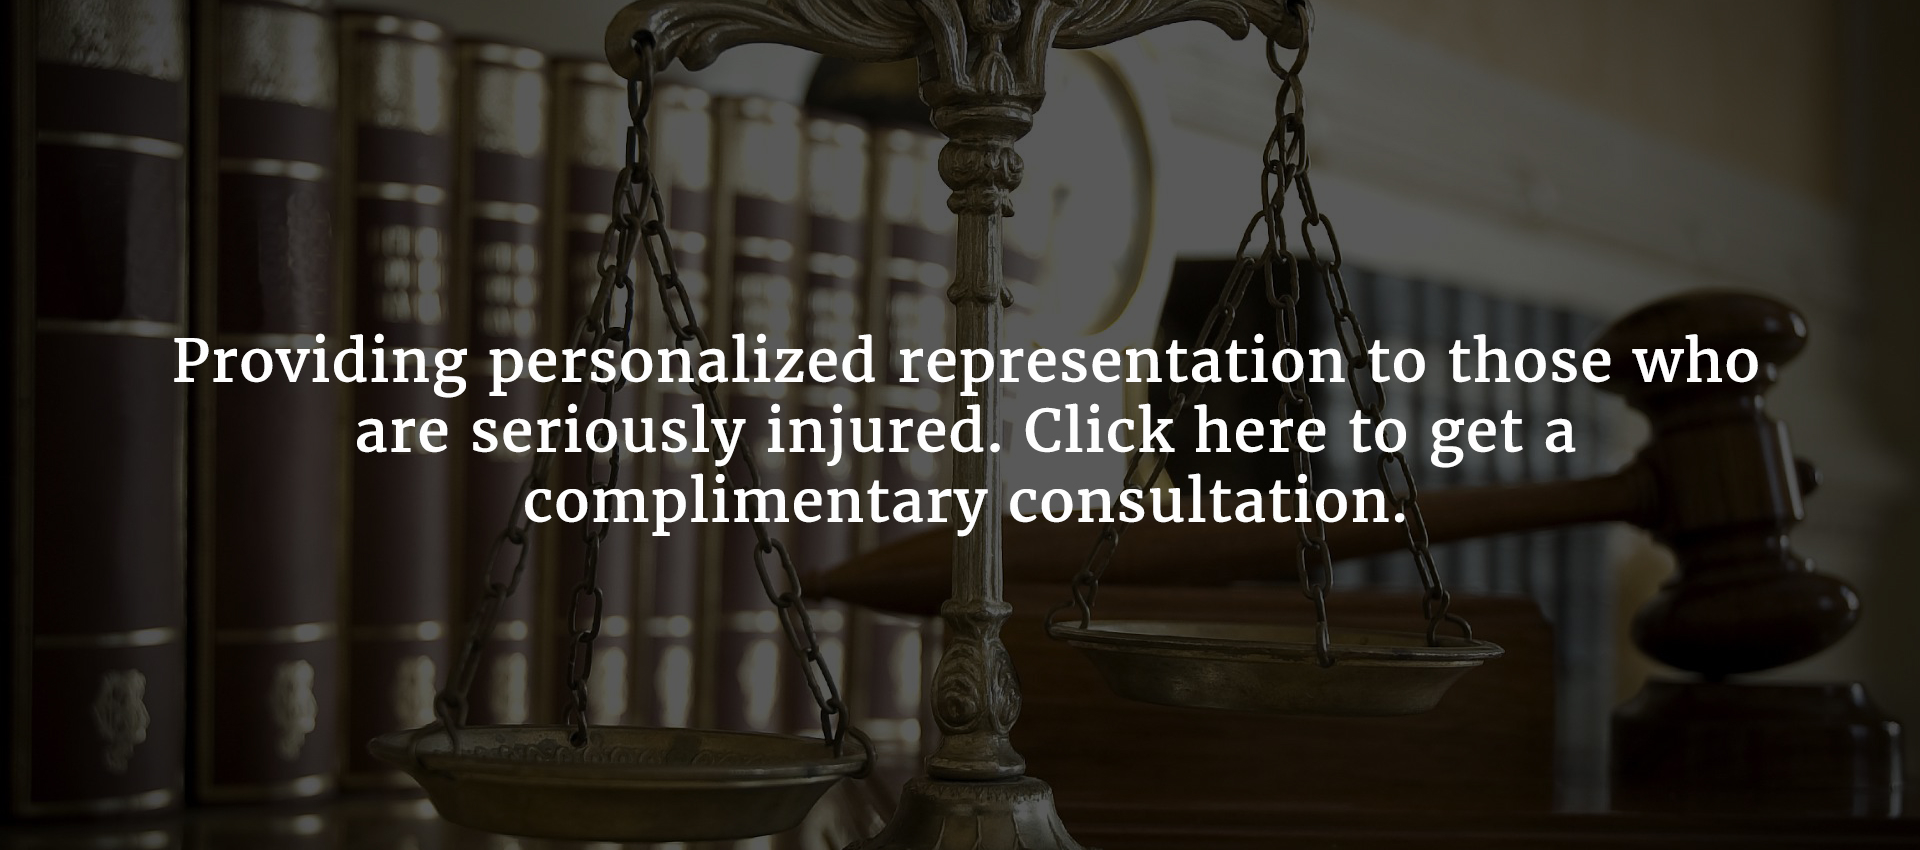 Get a complimentary consultation